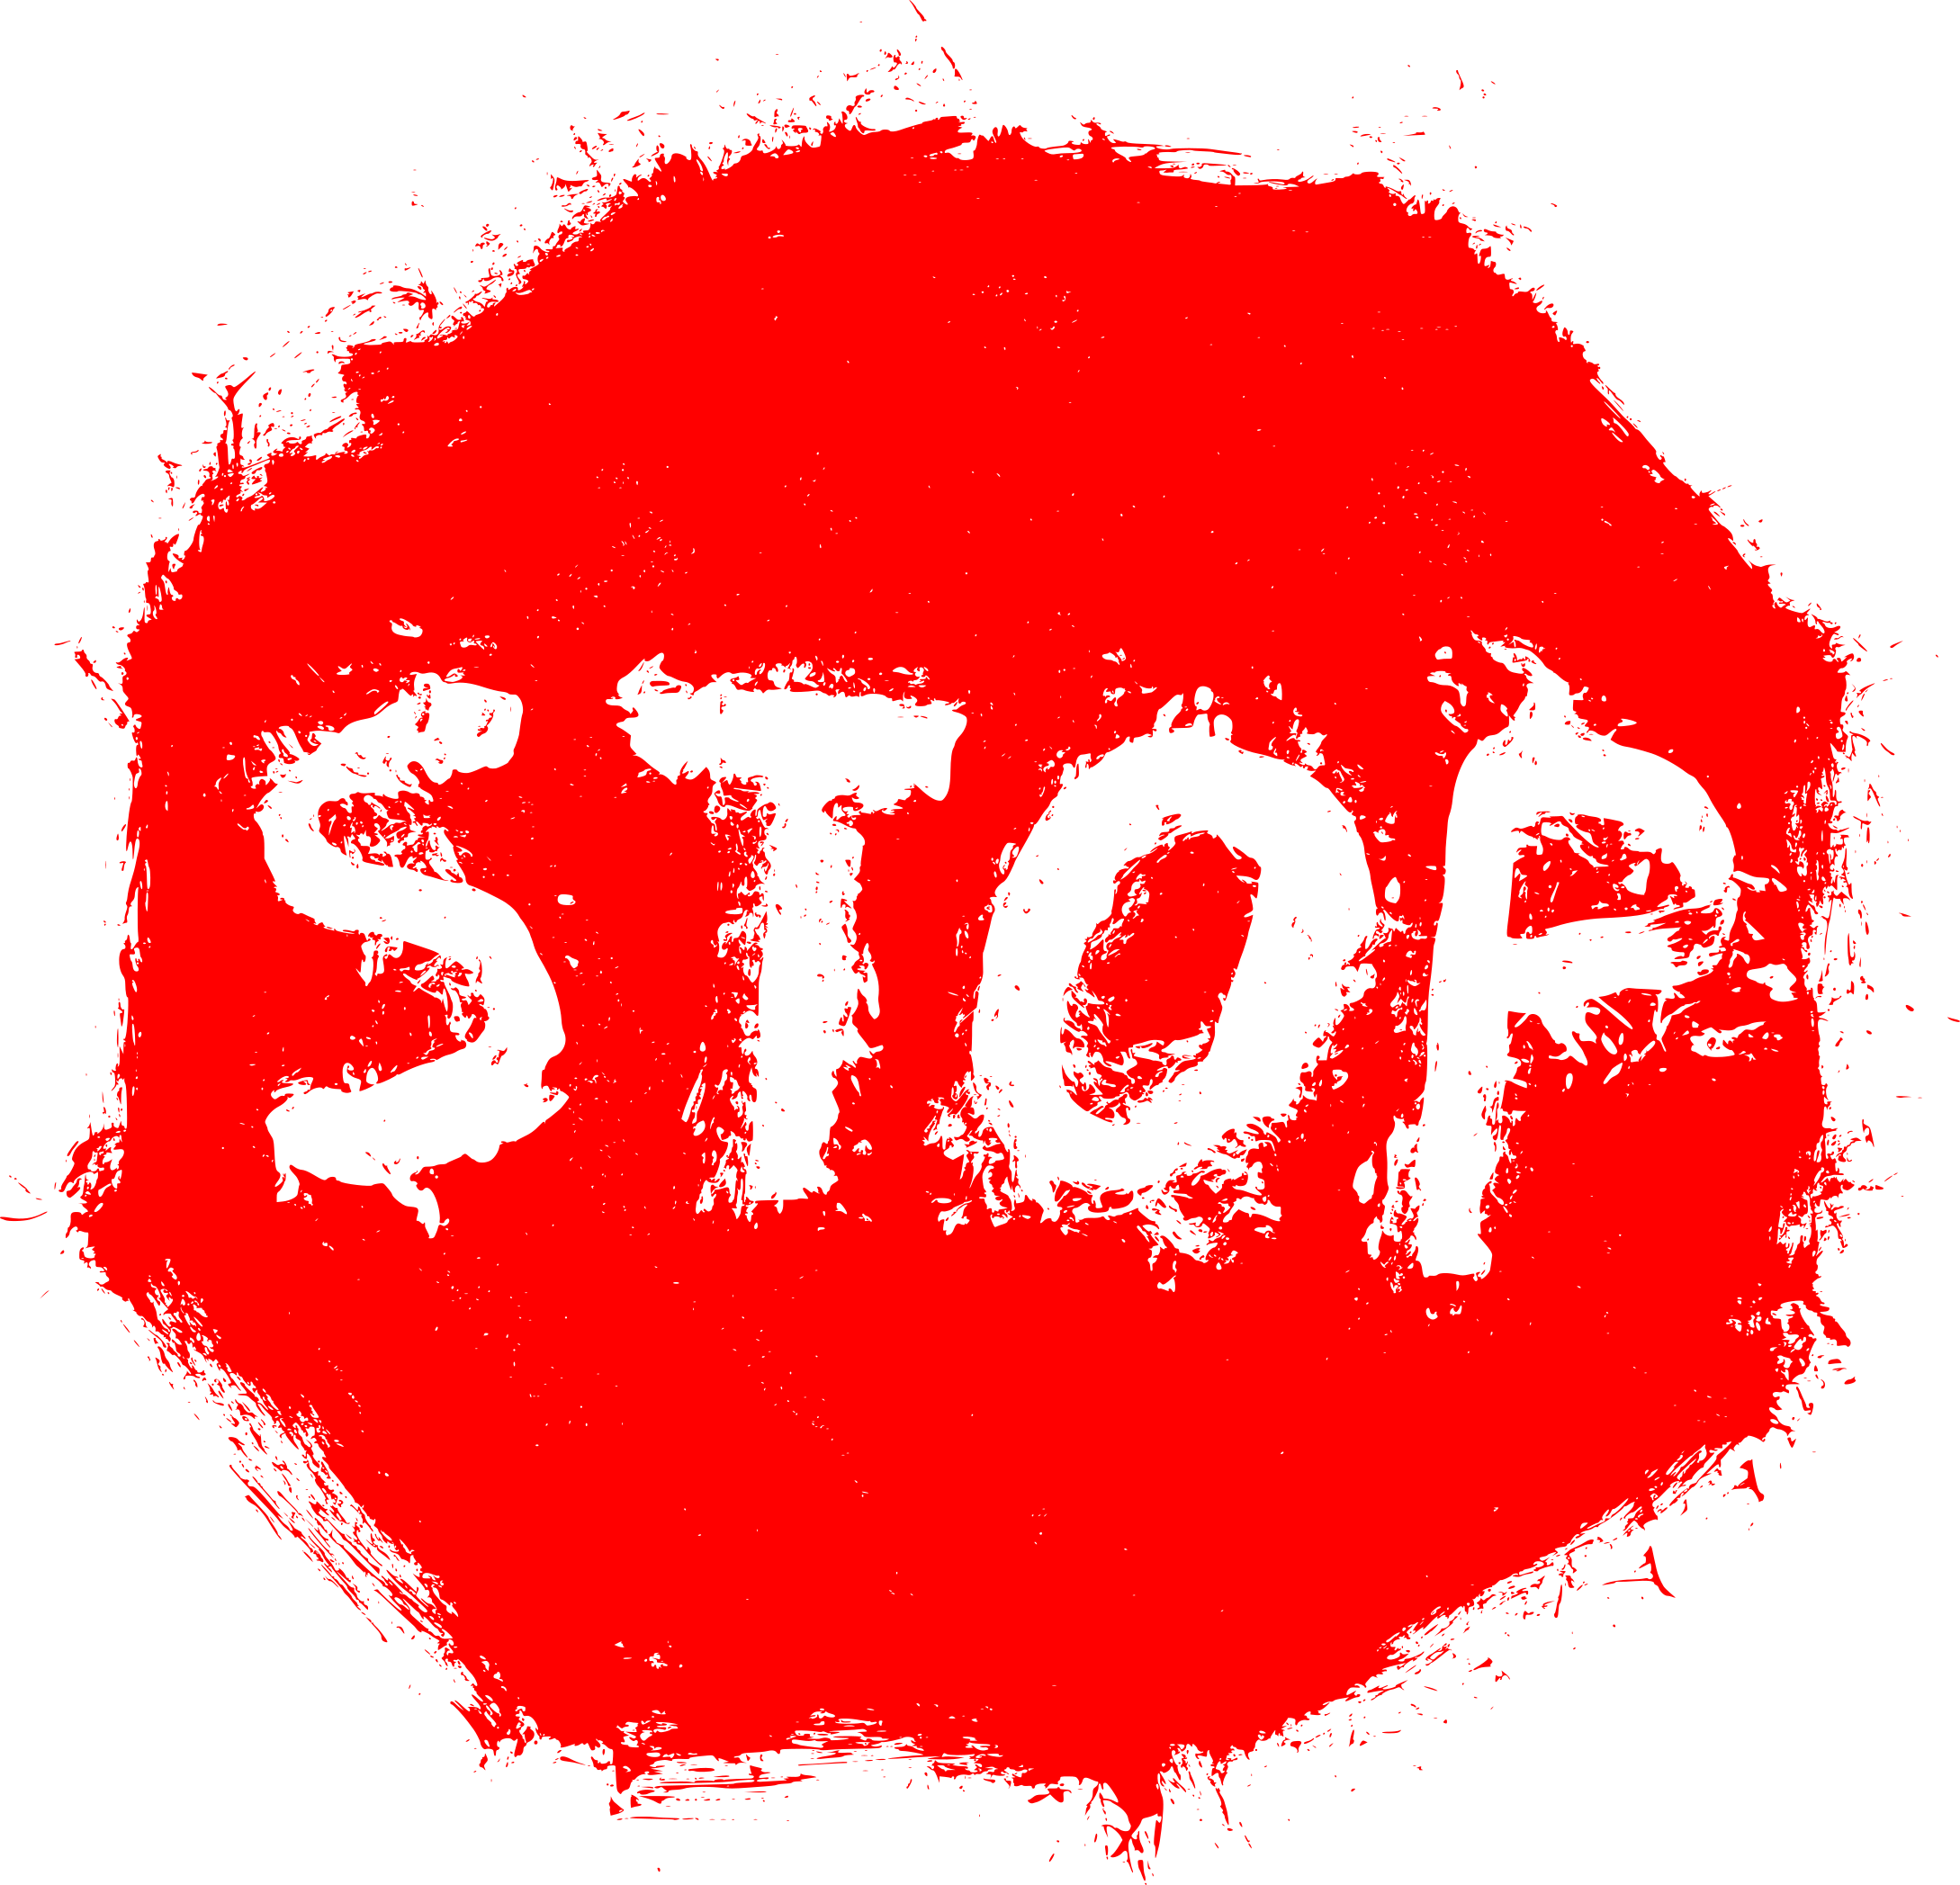 Red grunge png. Stop sign transparent onlygfx